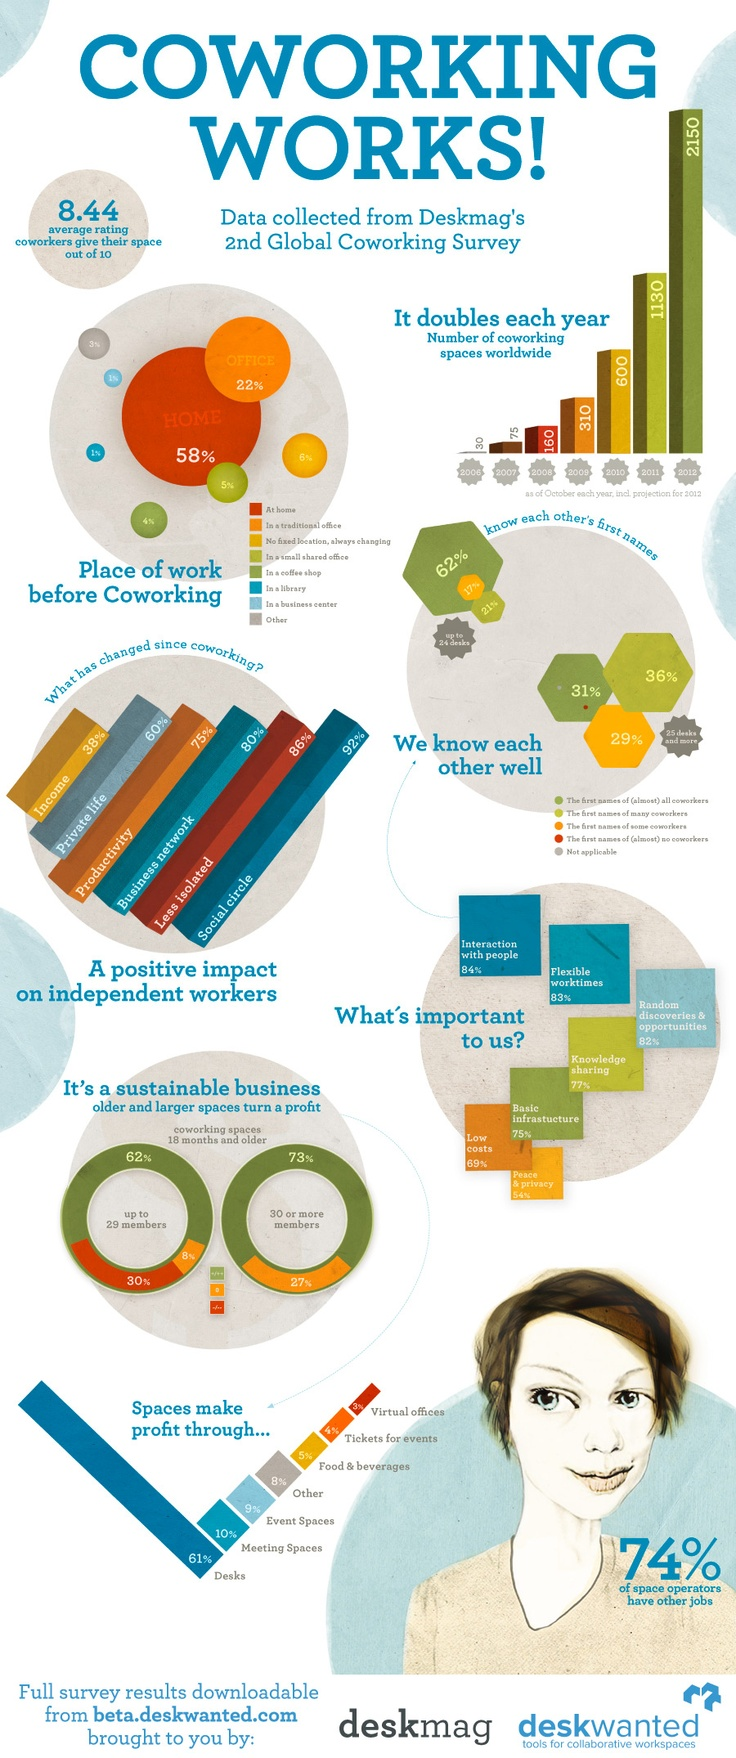 COWORKING WORKS! An infographic on #coworking and its spaces.